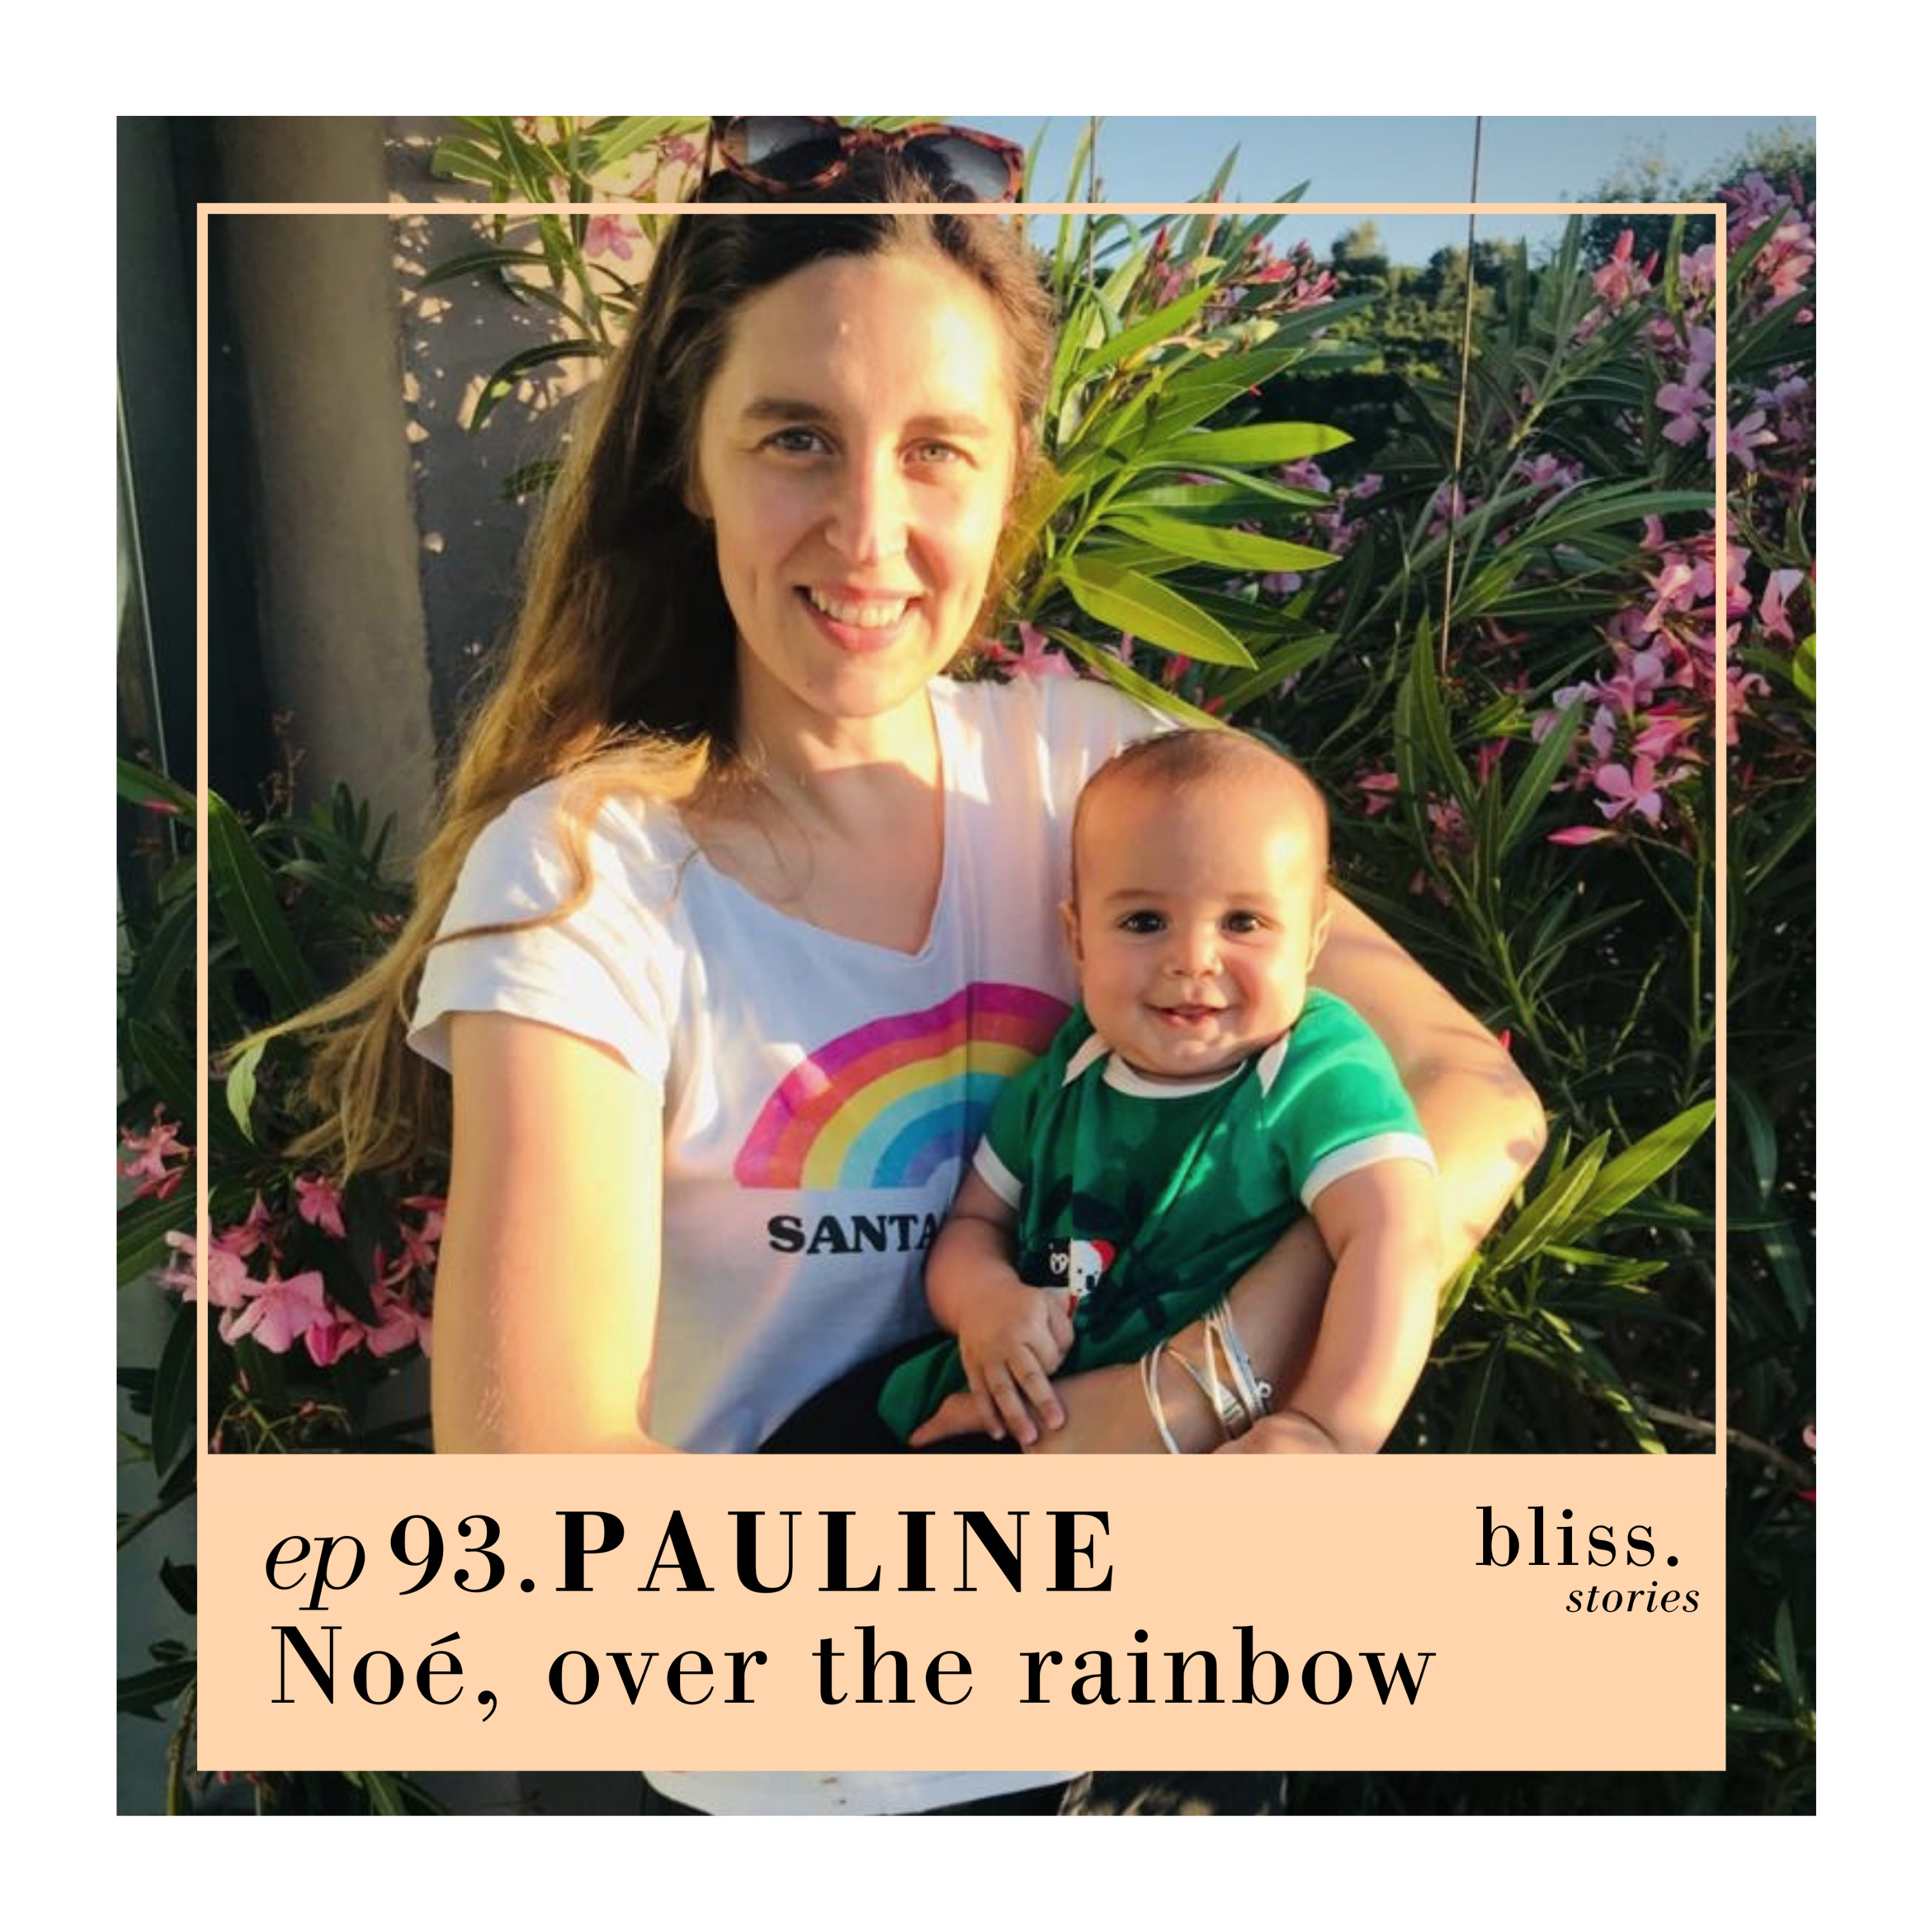 EP93 - PAULINE - NOÉ, OVER THE RAINBOW